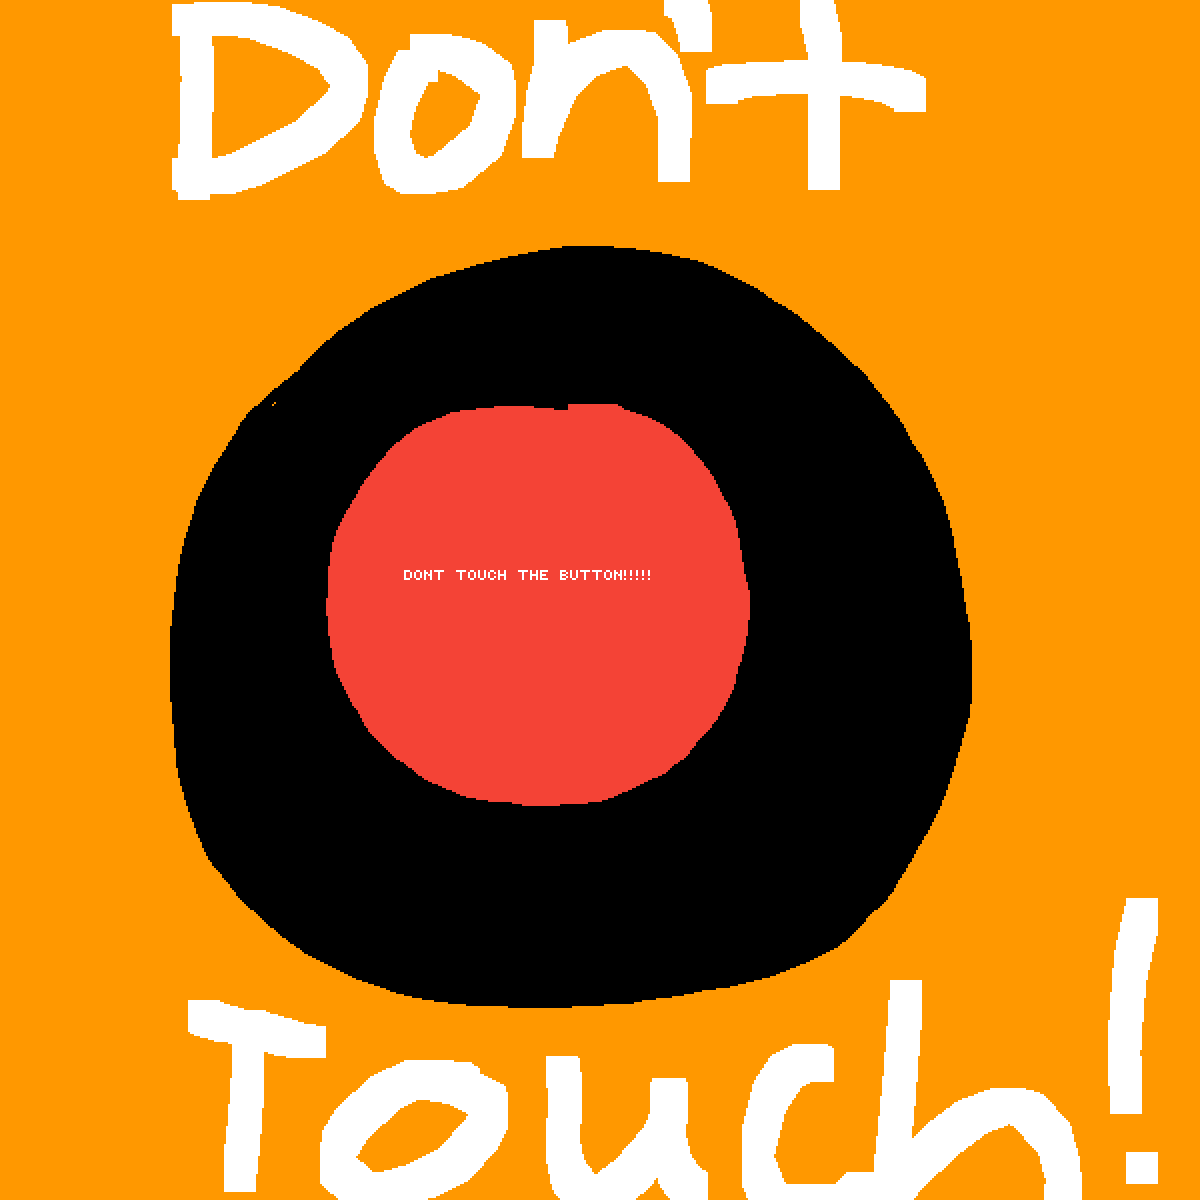 Dont touch the button  by XxCarolxX